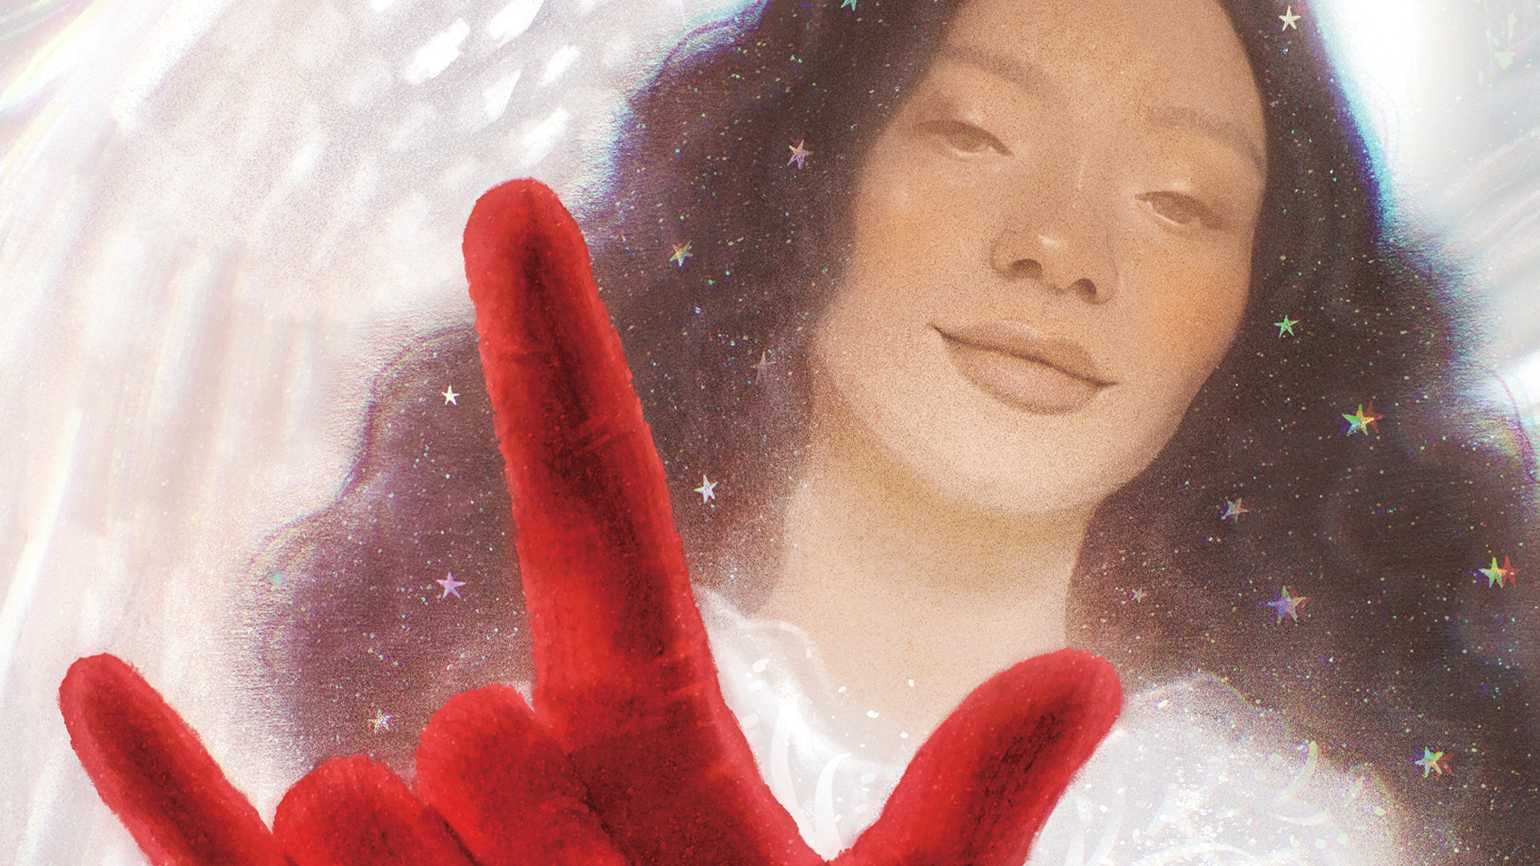 An artist's rendering of an angel with a red glove; Illustration by Victoria Borges